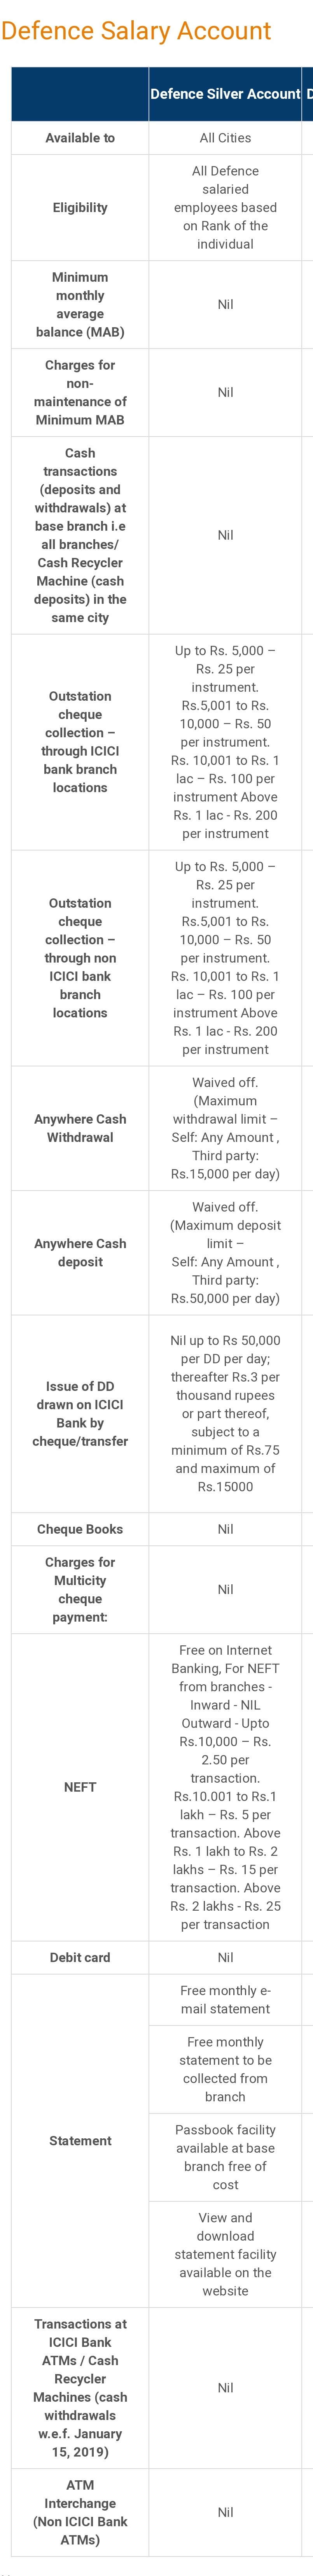 ICICI Bank DSP Account